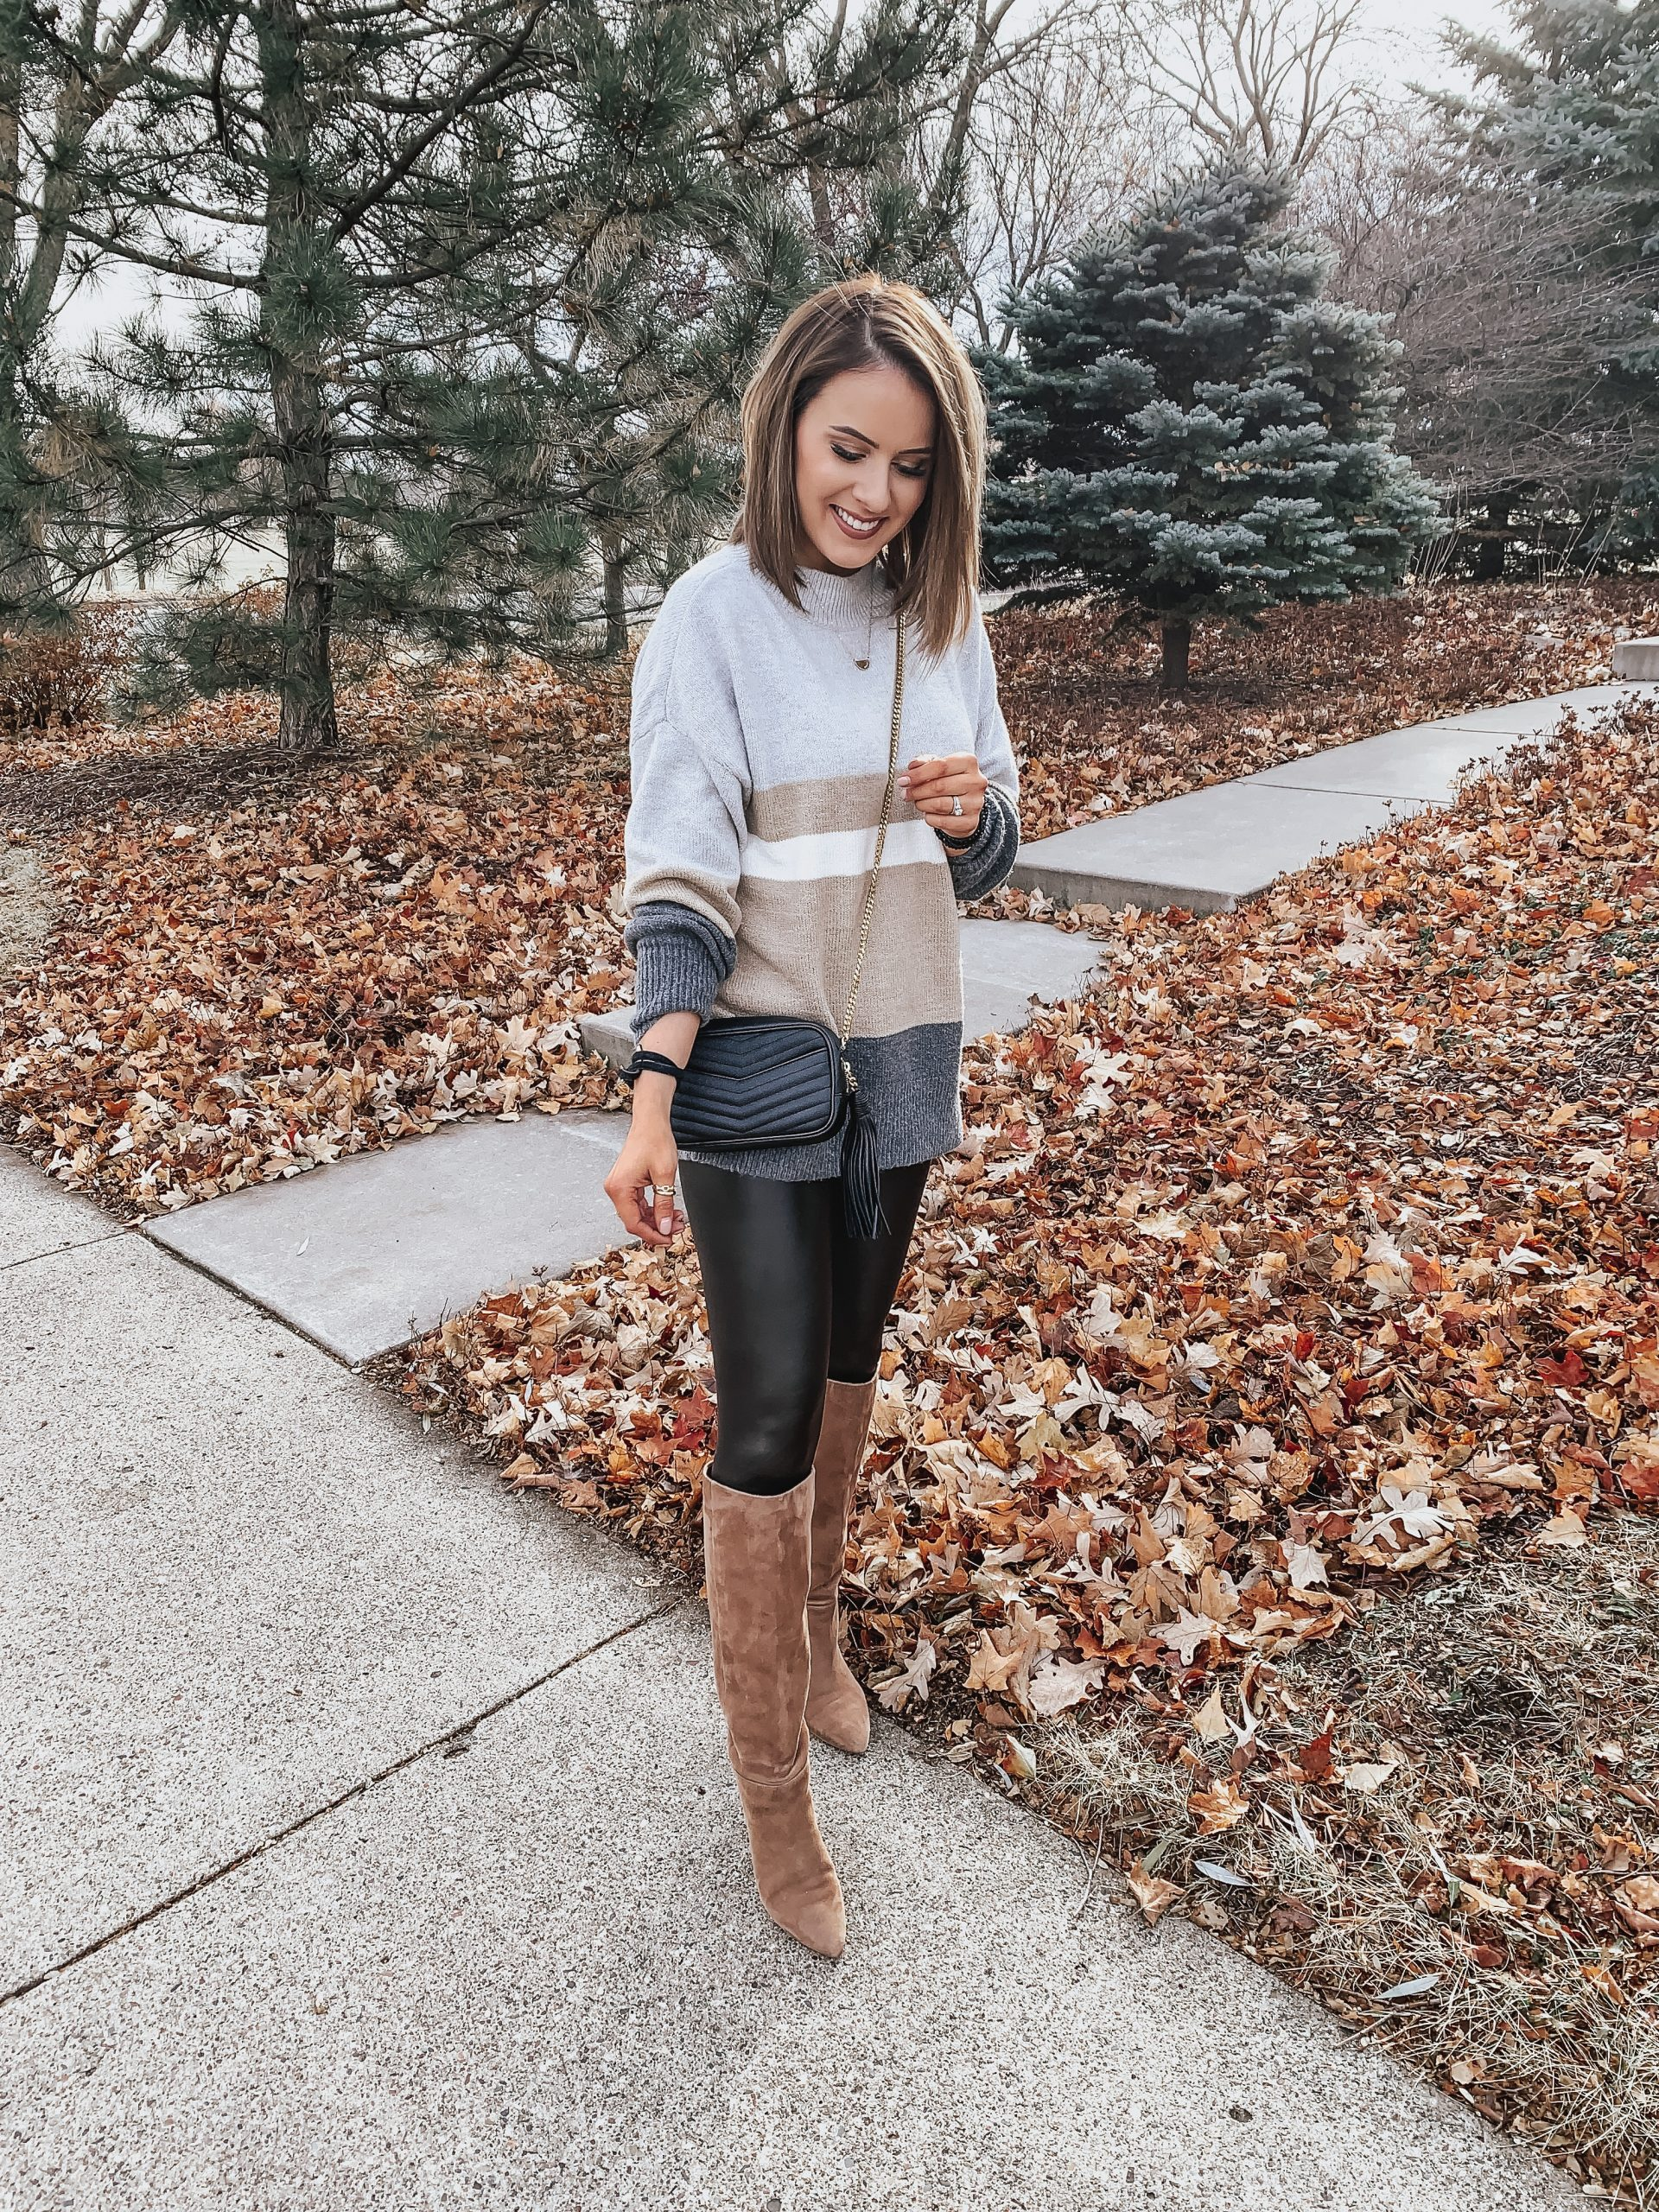 Last Minute Thanksgiving Outfit | Style Blogger Lauren Meyer shares a Last Minute Thanksgiving Outfit